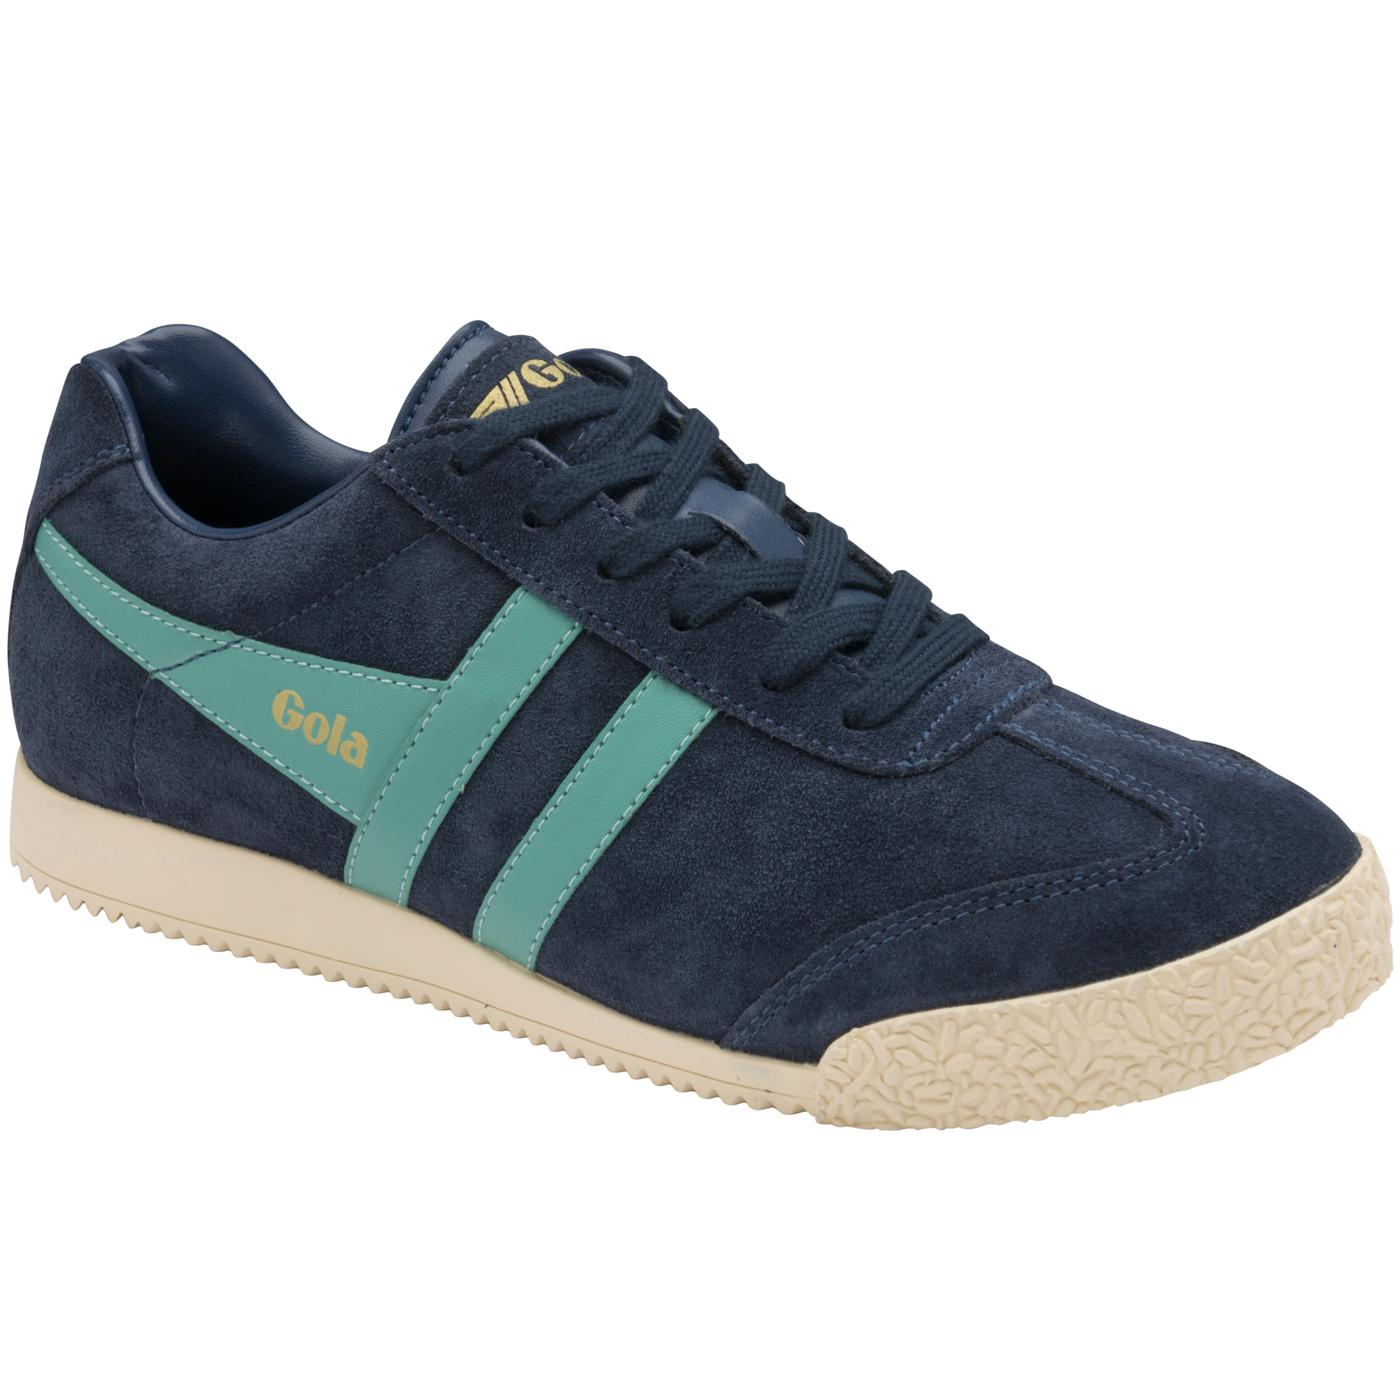 GOLA Harrier Women's Retro Suede Trainers (N/SM)